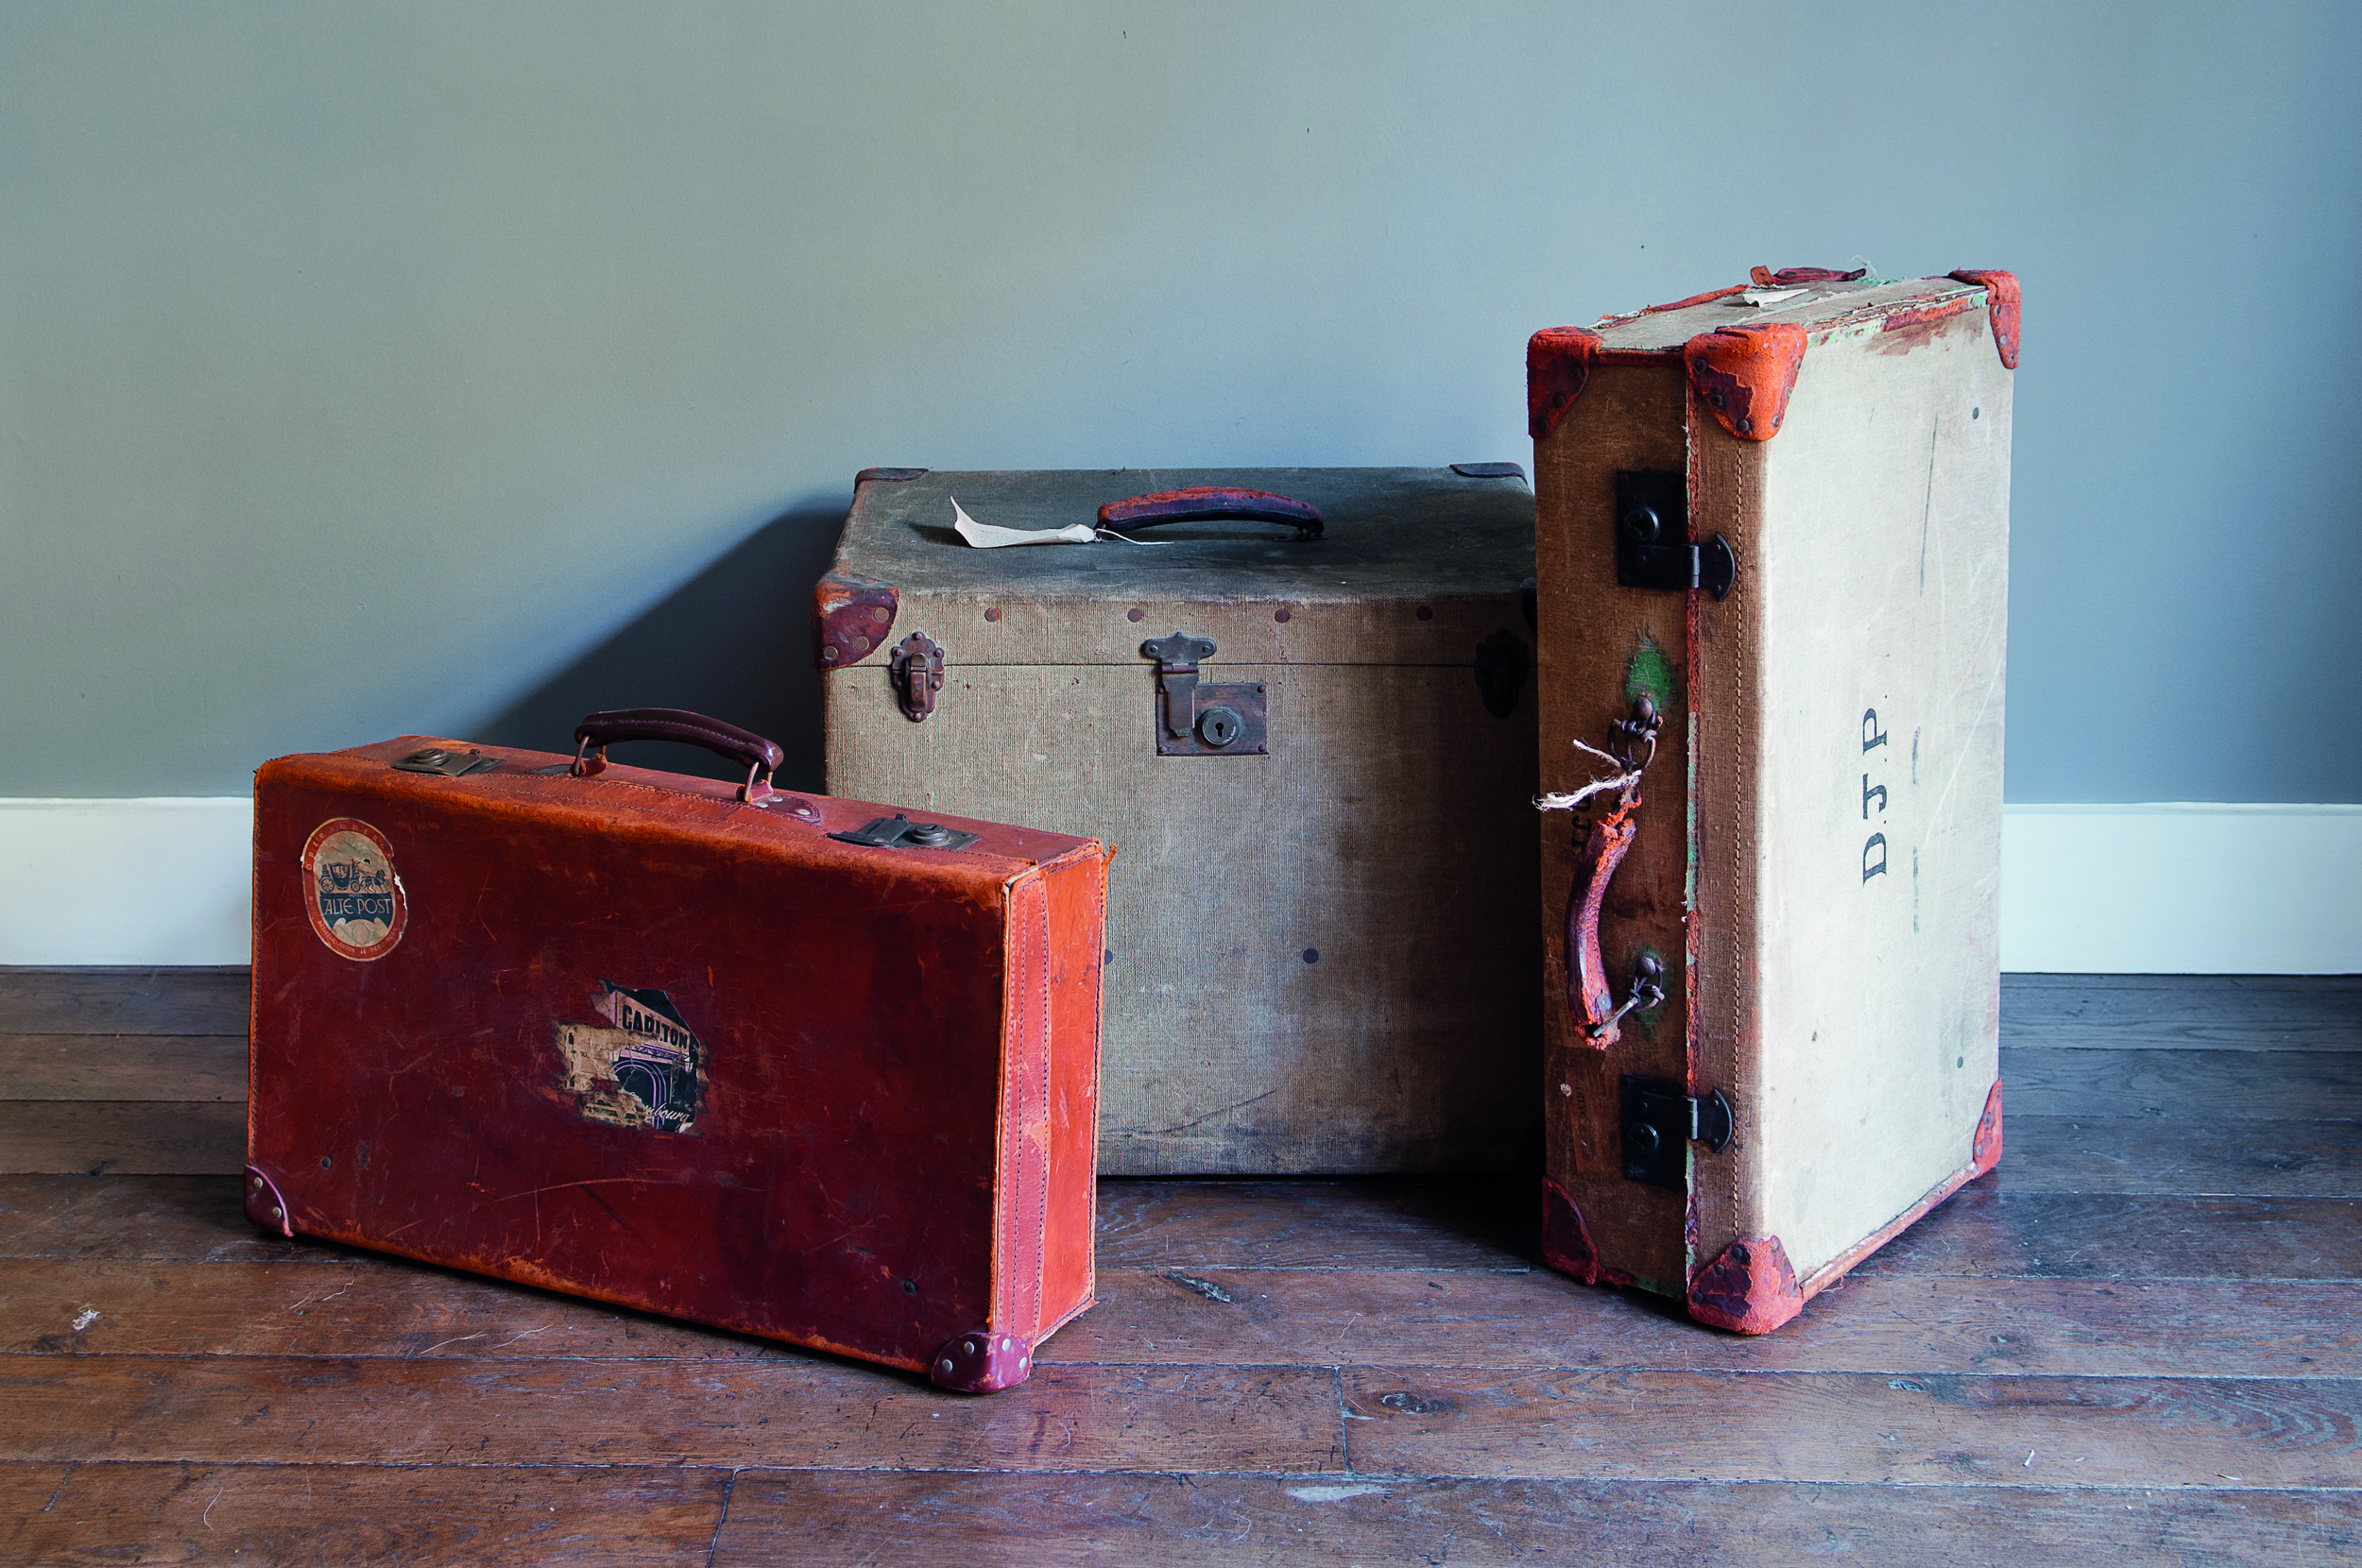 trunks, chests and amo boxes